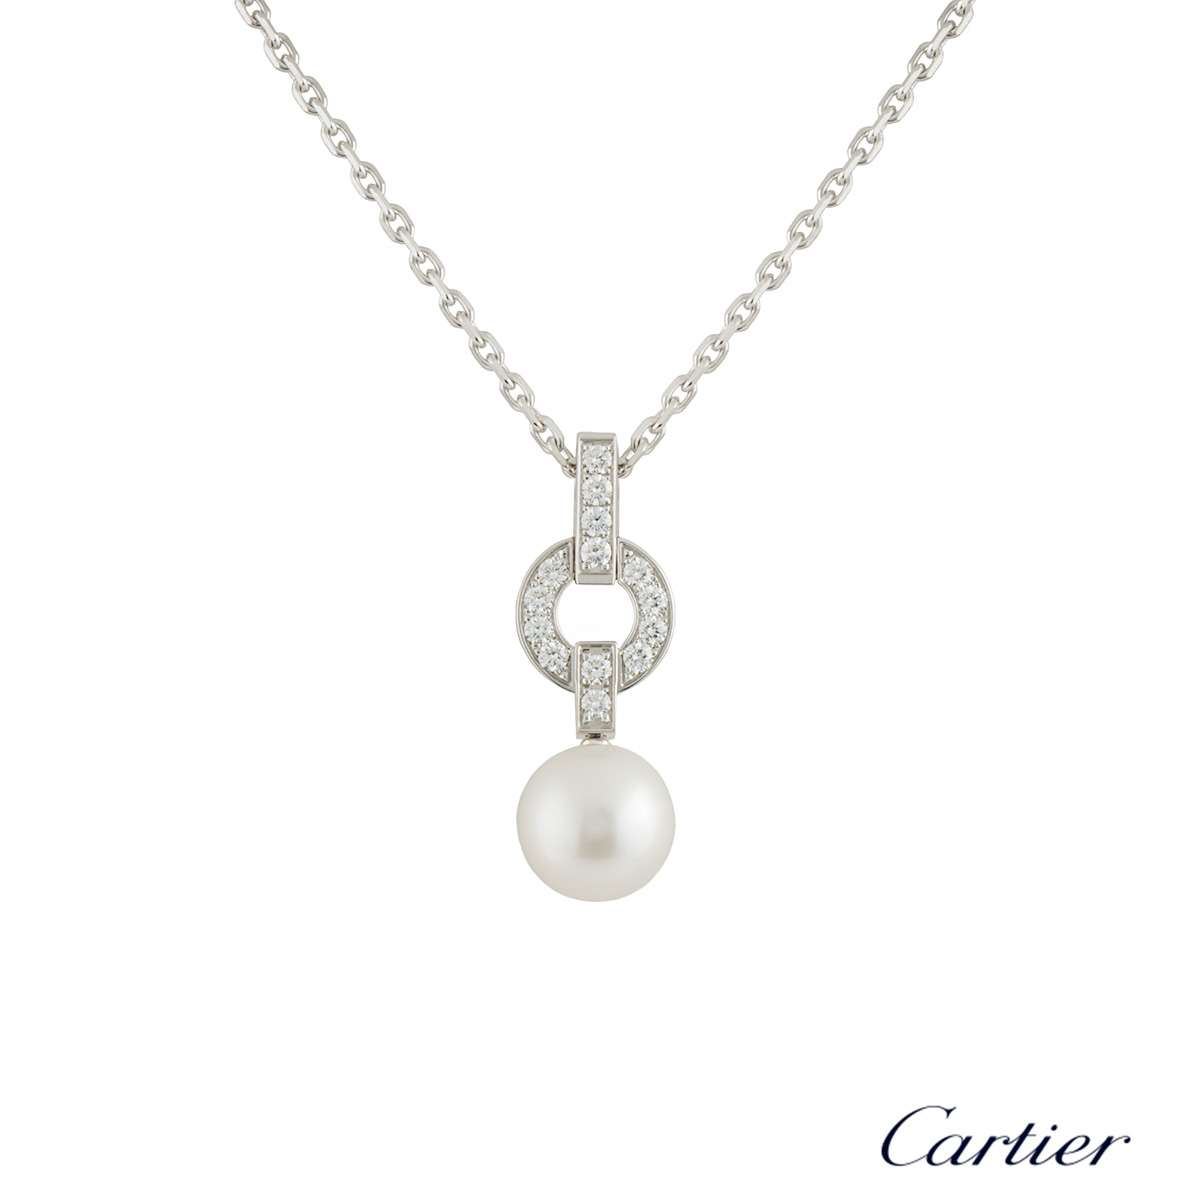 Cartier Himalia Pearl Necklace